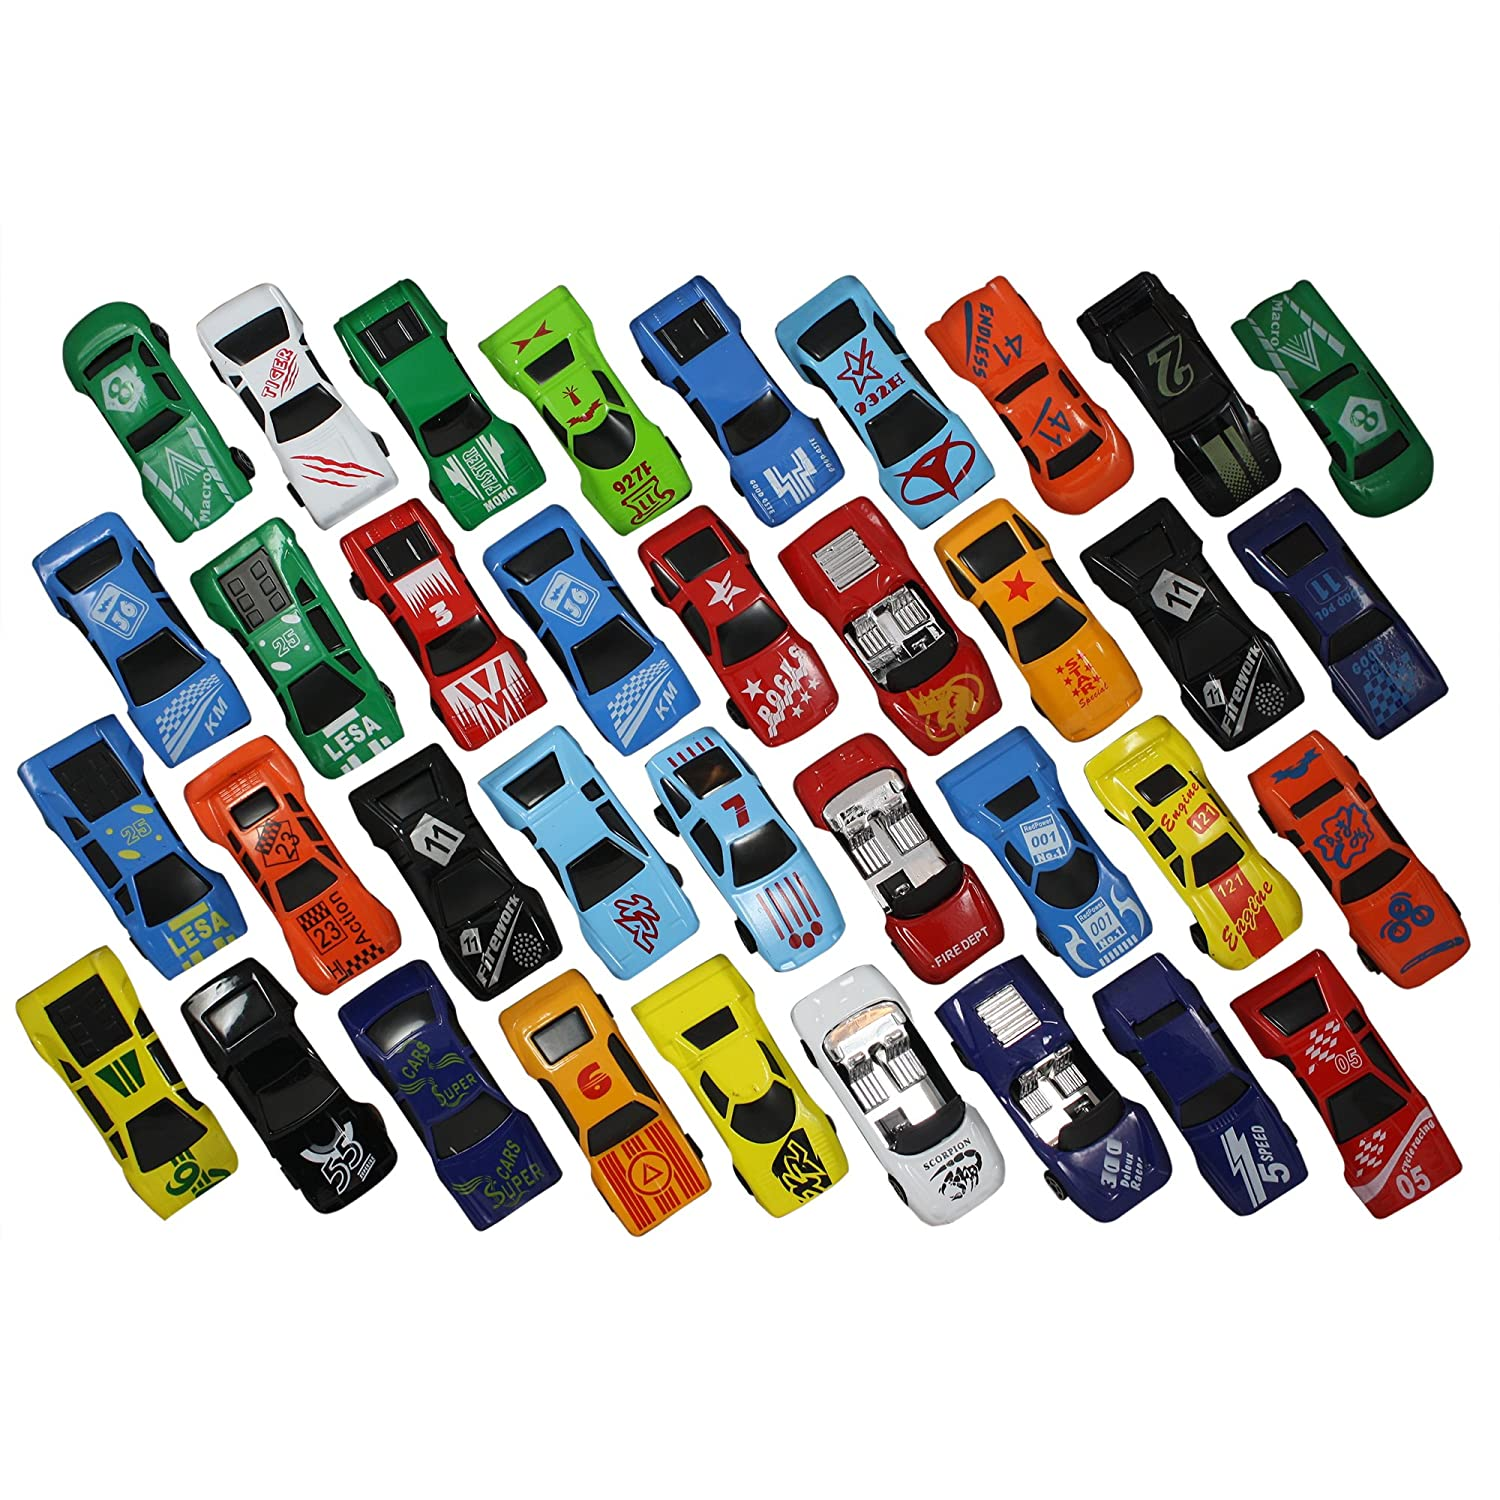 Race Car Toys Assorted for Kids Boys or Girls Free Wheeling Die Cast Metal Plastic Toy Cars Set of 36 Numbered Vehicles Convertibles Great Gift Party Favors or Cake Toppers